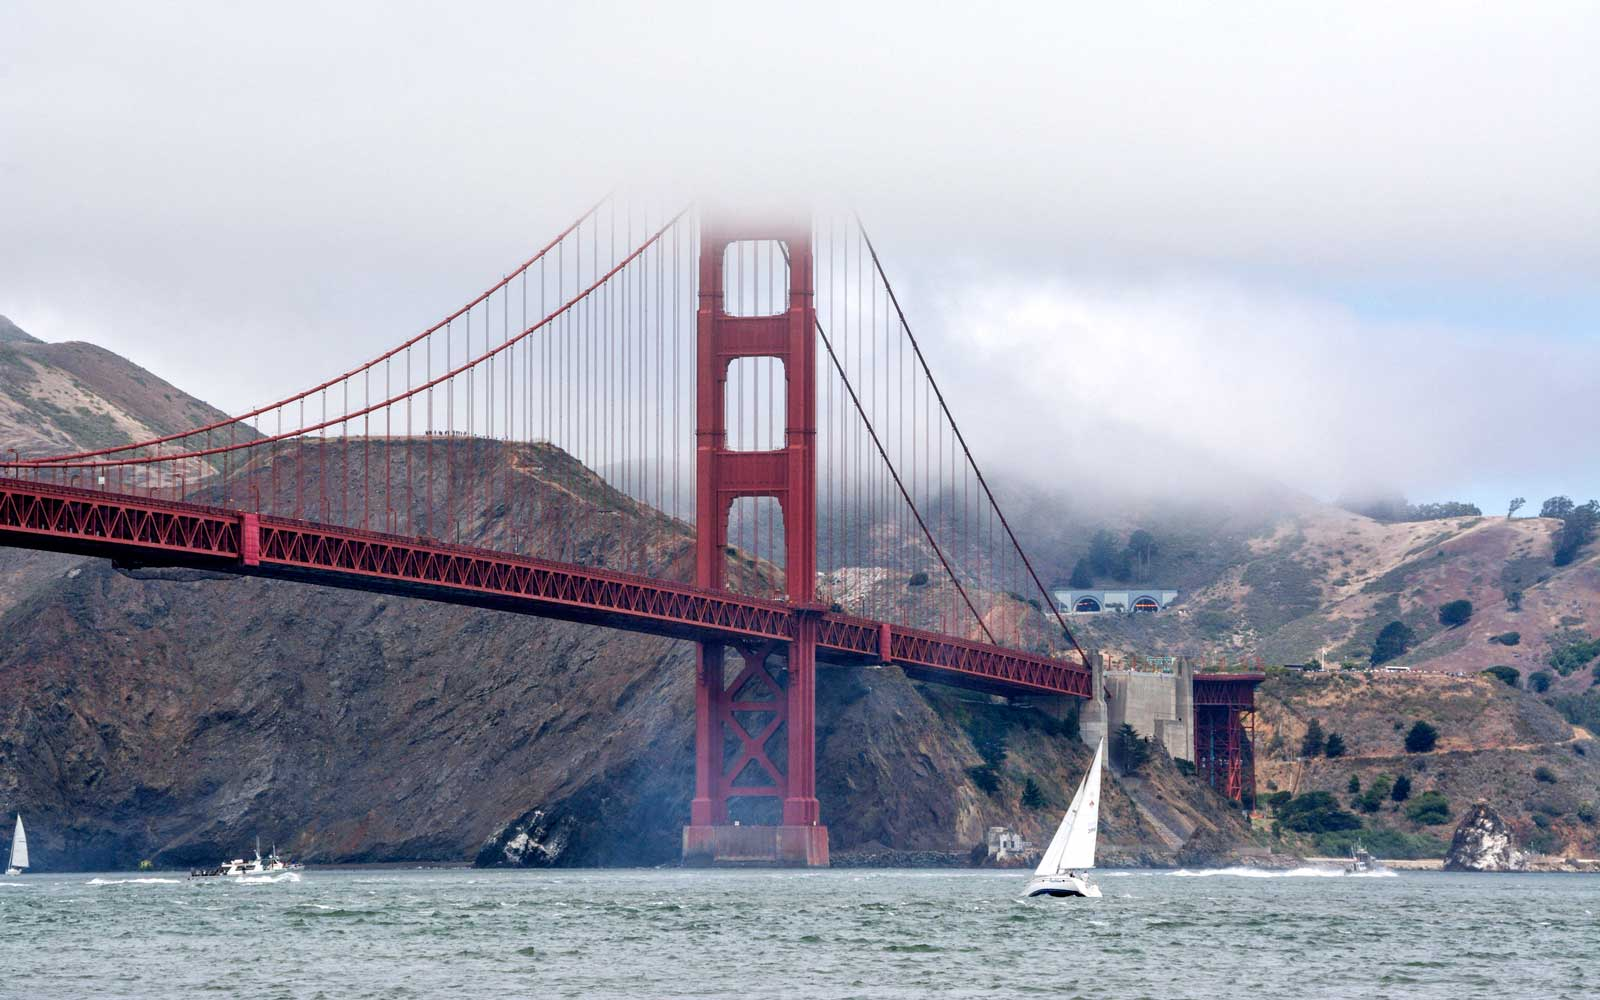 Sail Away in San Francisco